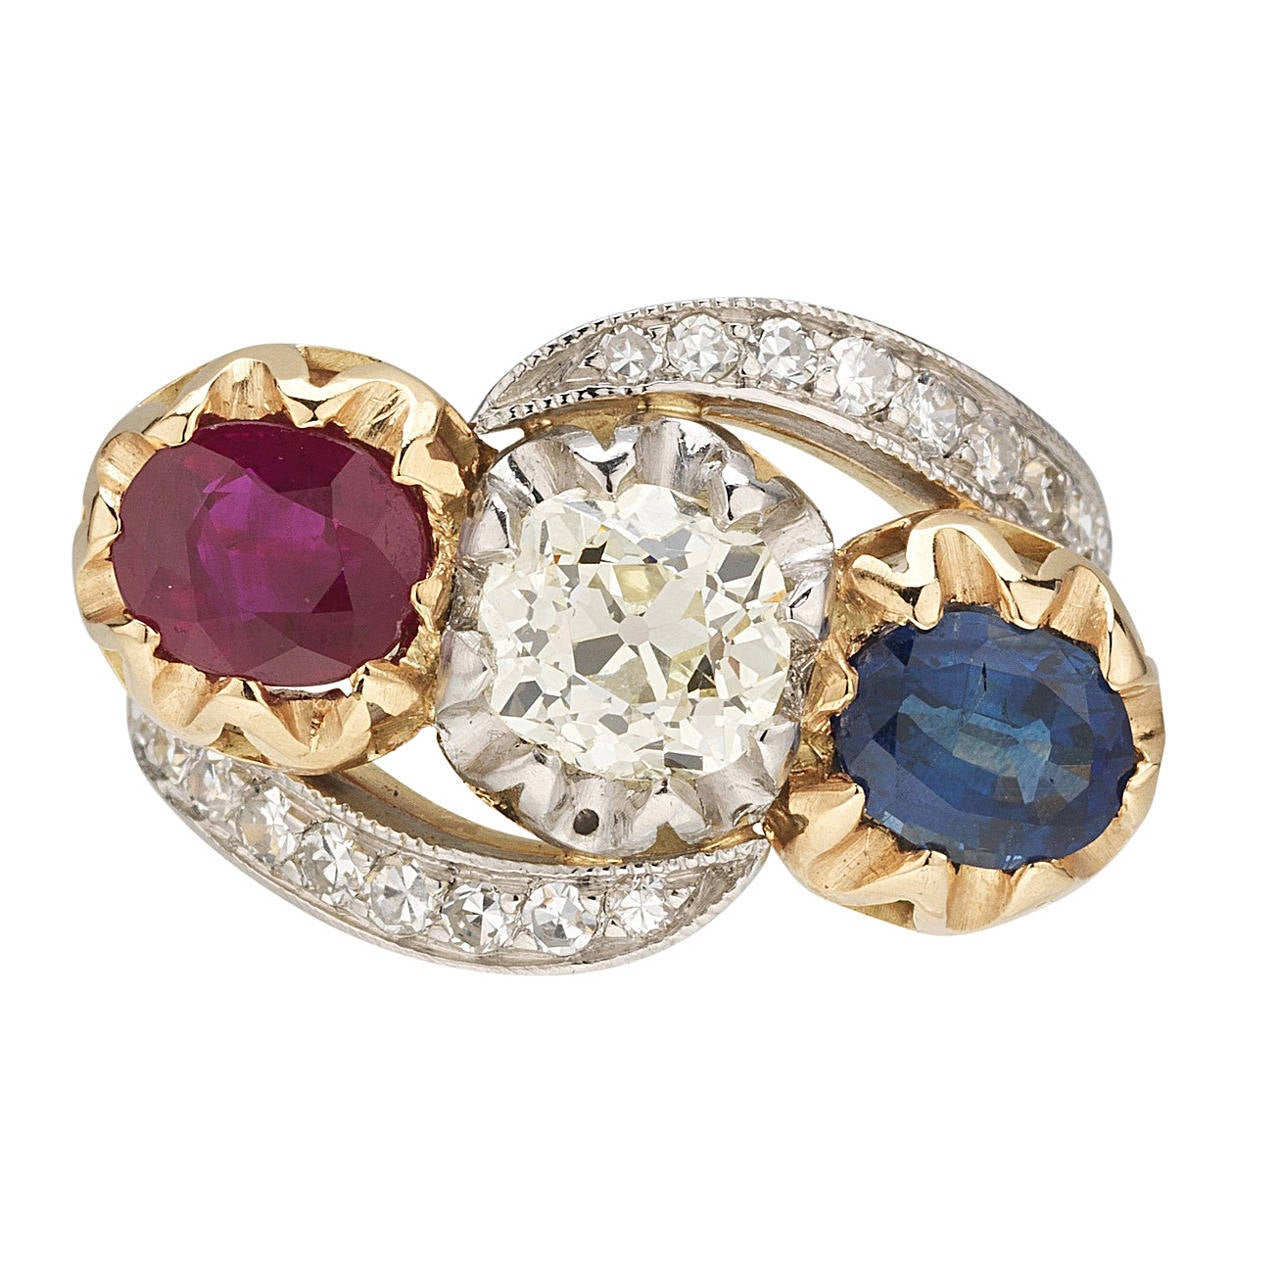 Edwardian Sapphire Ruby Old Mine Cut Diamond Gold Platinum